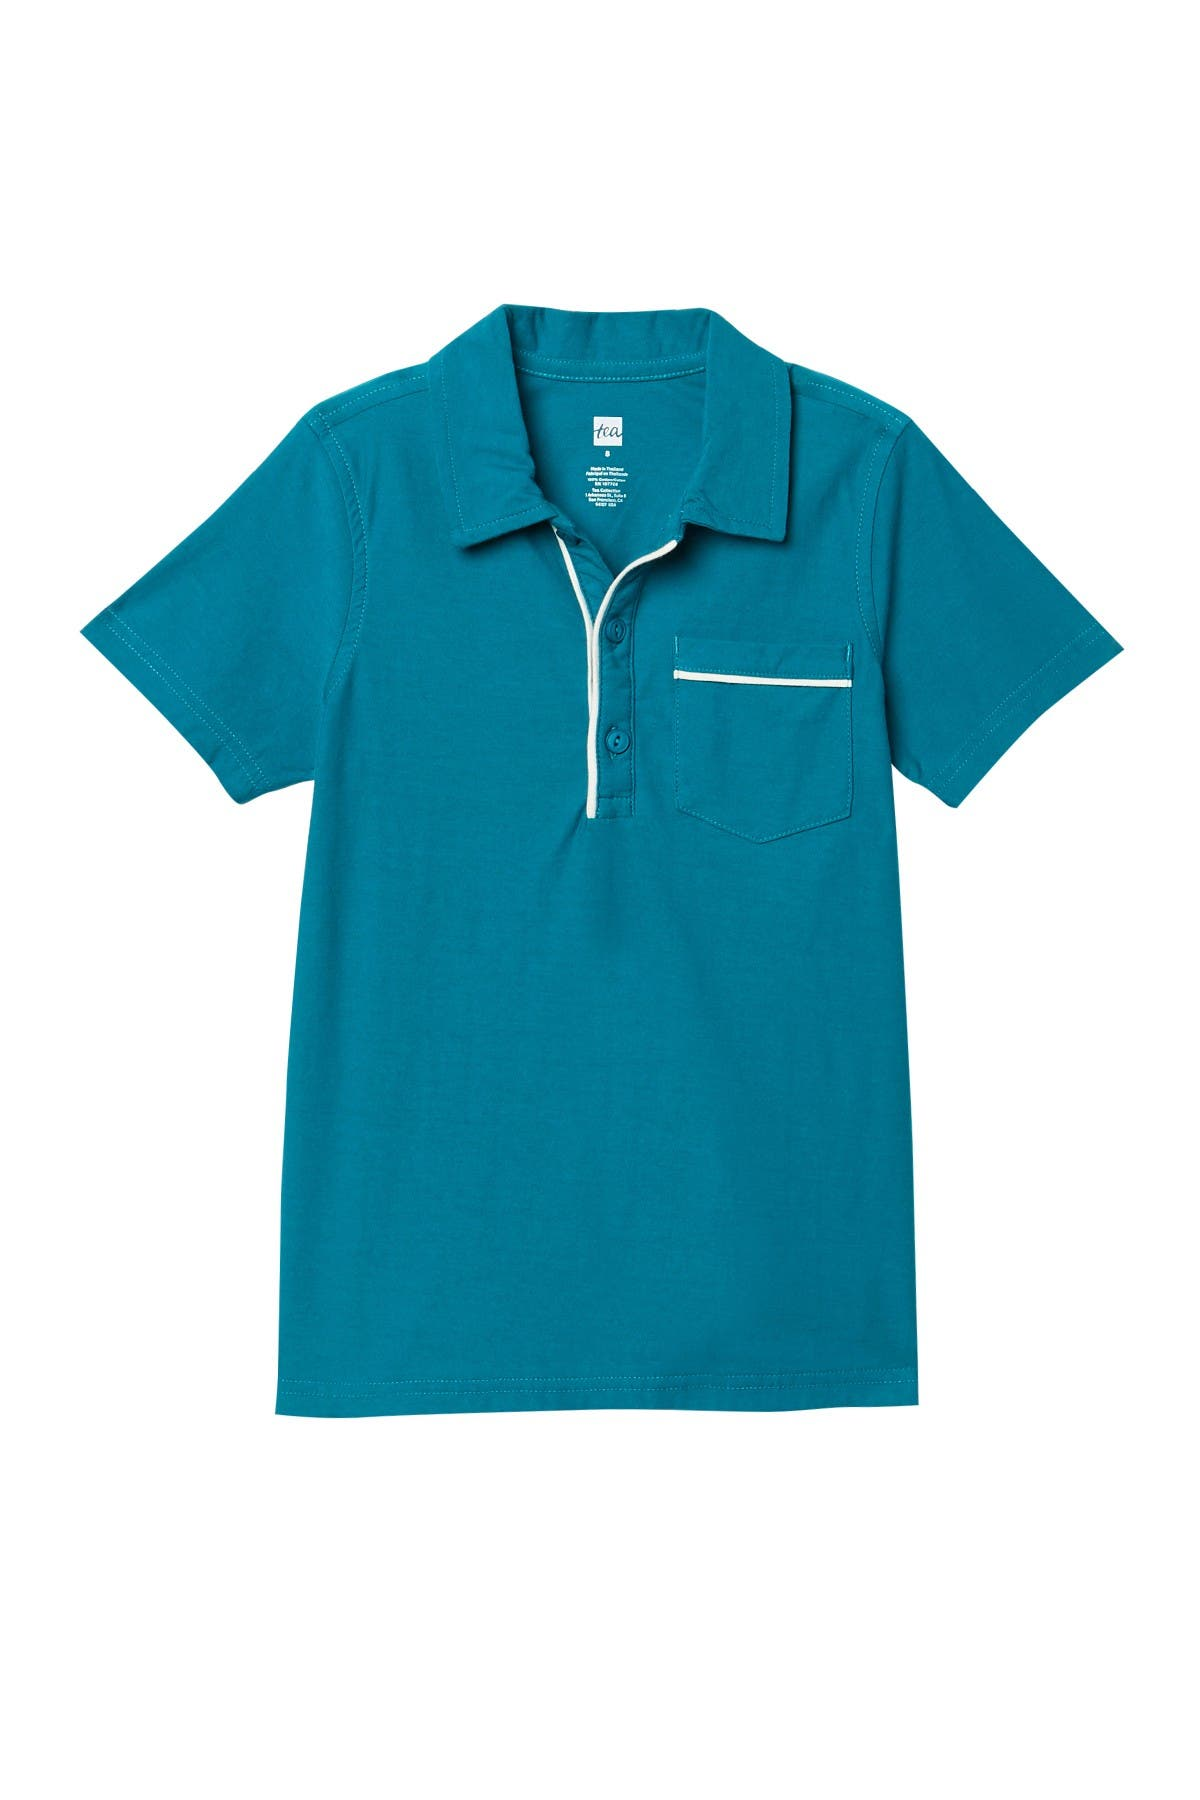 Image of Tea Collection Piped Polo Tee